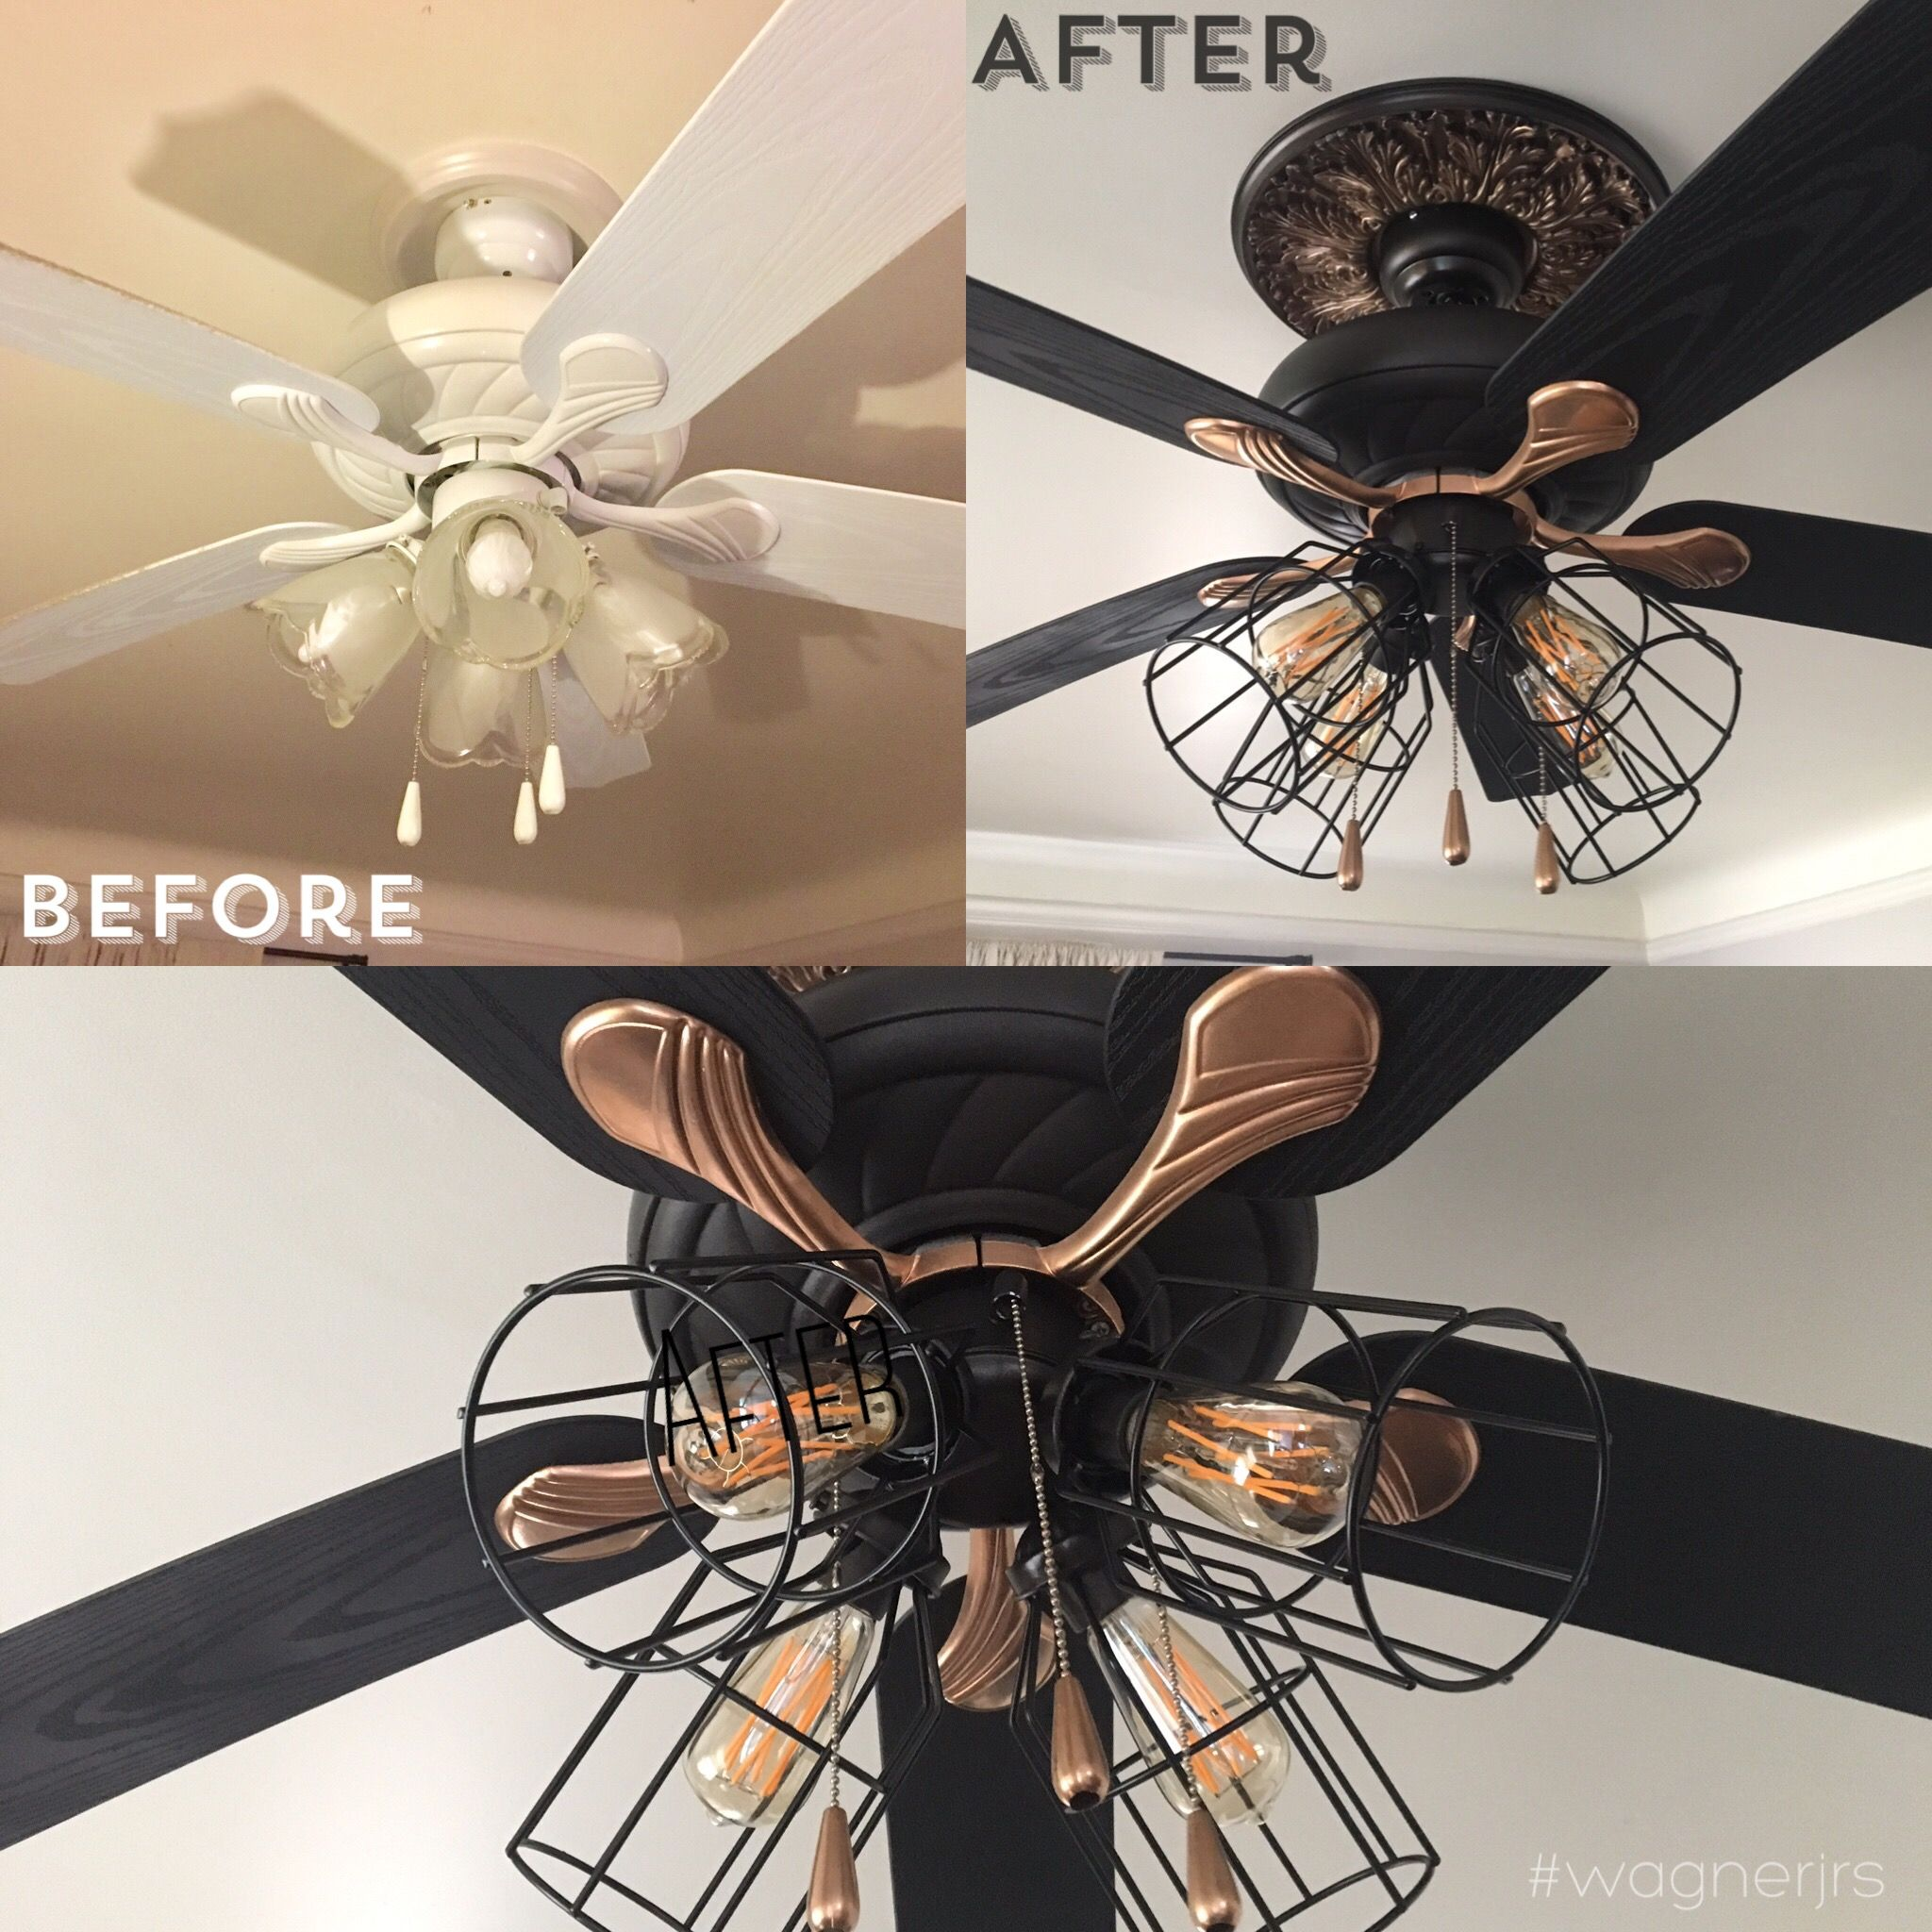 This Update Is Something Something Complete Couldn T Part With Nana S Old Fan So I Gave It Some Fresh P Ceiling Fan Makeover Diy Furniture Fix Chandelier Fan